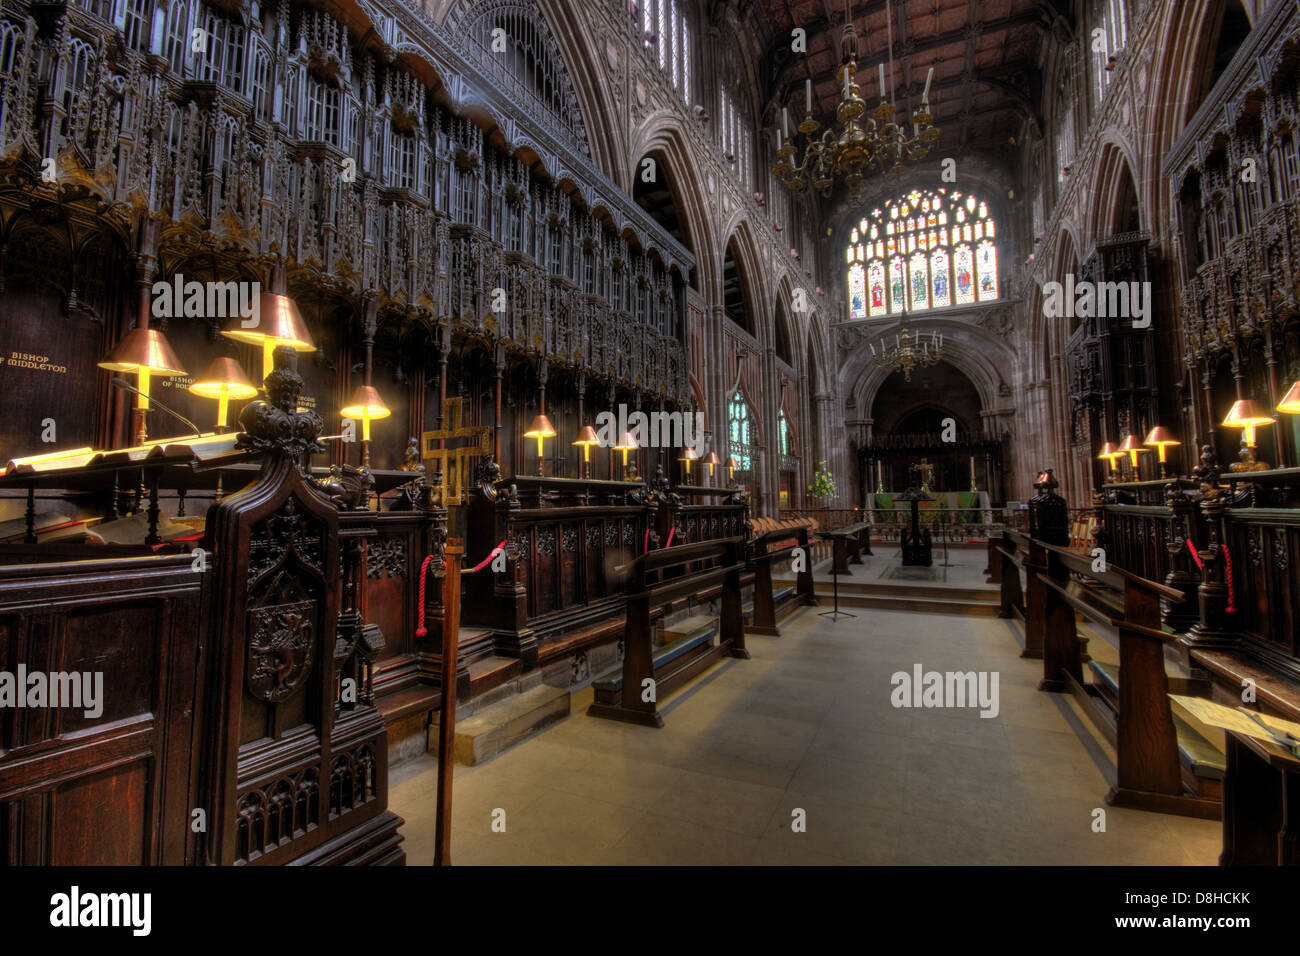 English,cathedrals,medieval,church,inside,choir,area,Collegiate,Church,of,St,Mary,Denys,and,Saint,George,city,centre,Victoria,James,Stanley,design,architecture,Perpendicular,Gothic,style,wooden,furnishings,including,the,pulpitum,stalls,Grade,I,listed,buildings,building,M31SX,M3,1SX,history,gotonysmith wide shot wideshot angle historic,Buy Pictures of,Buy Images Of